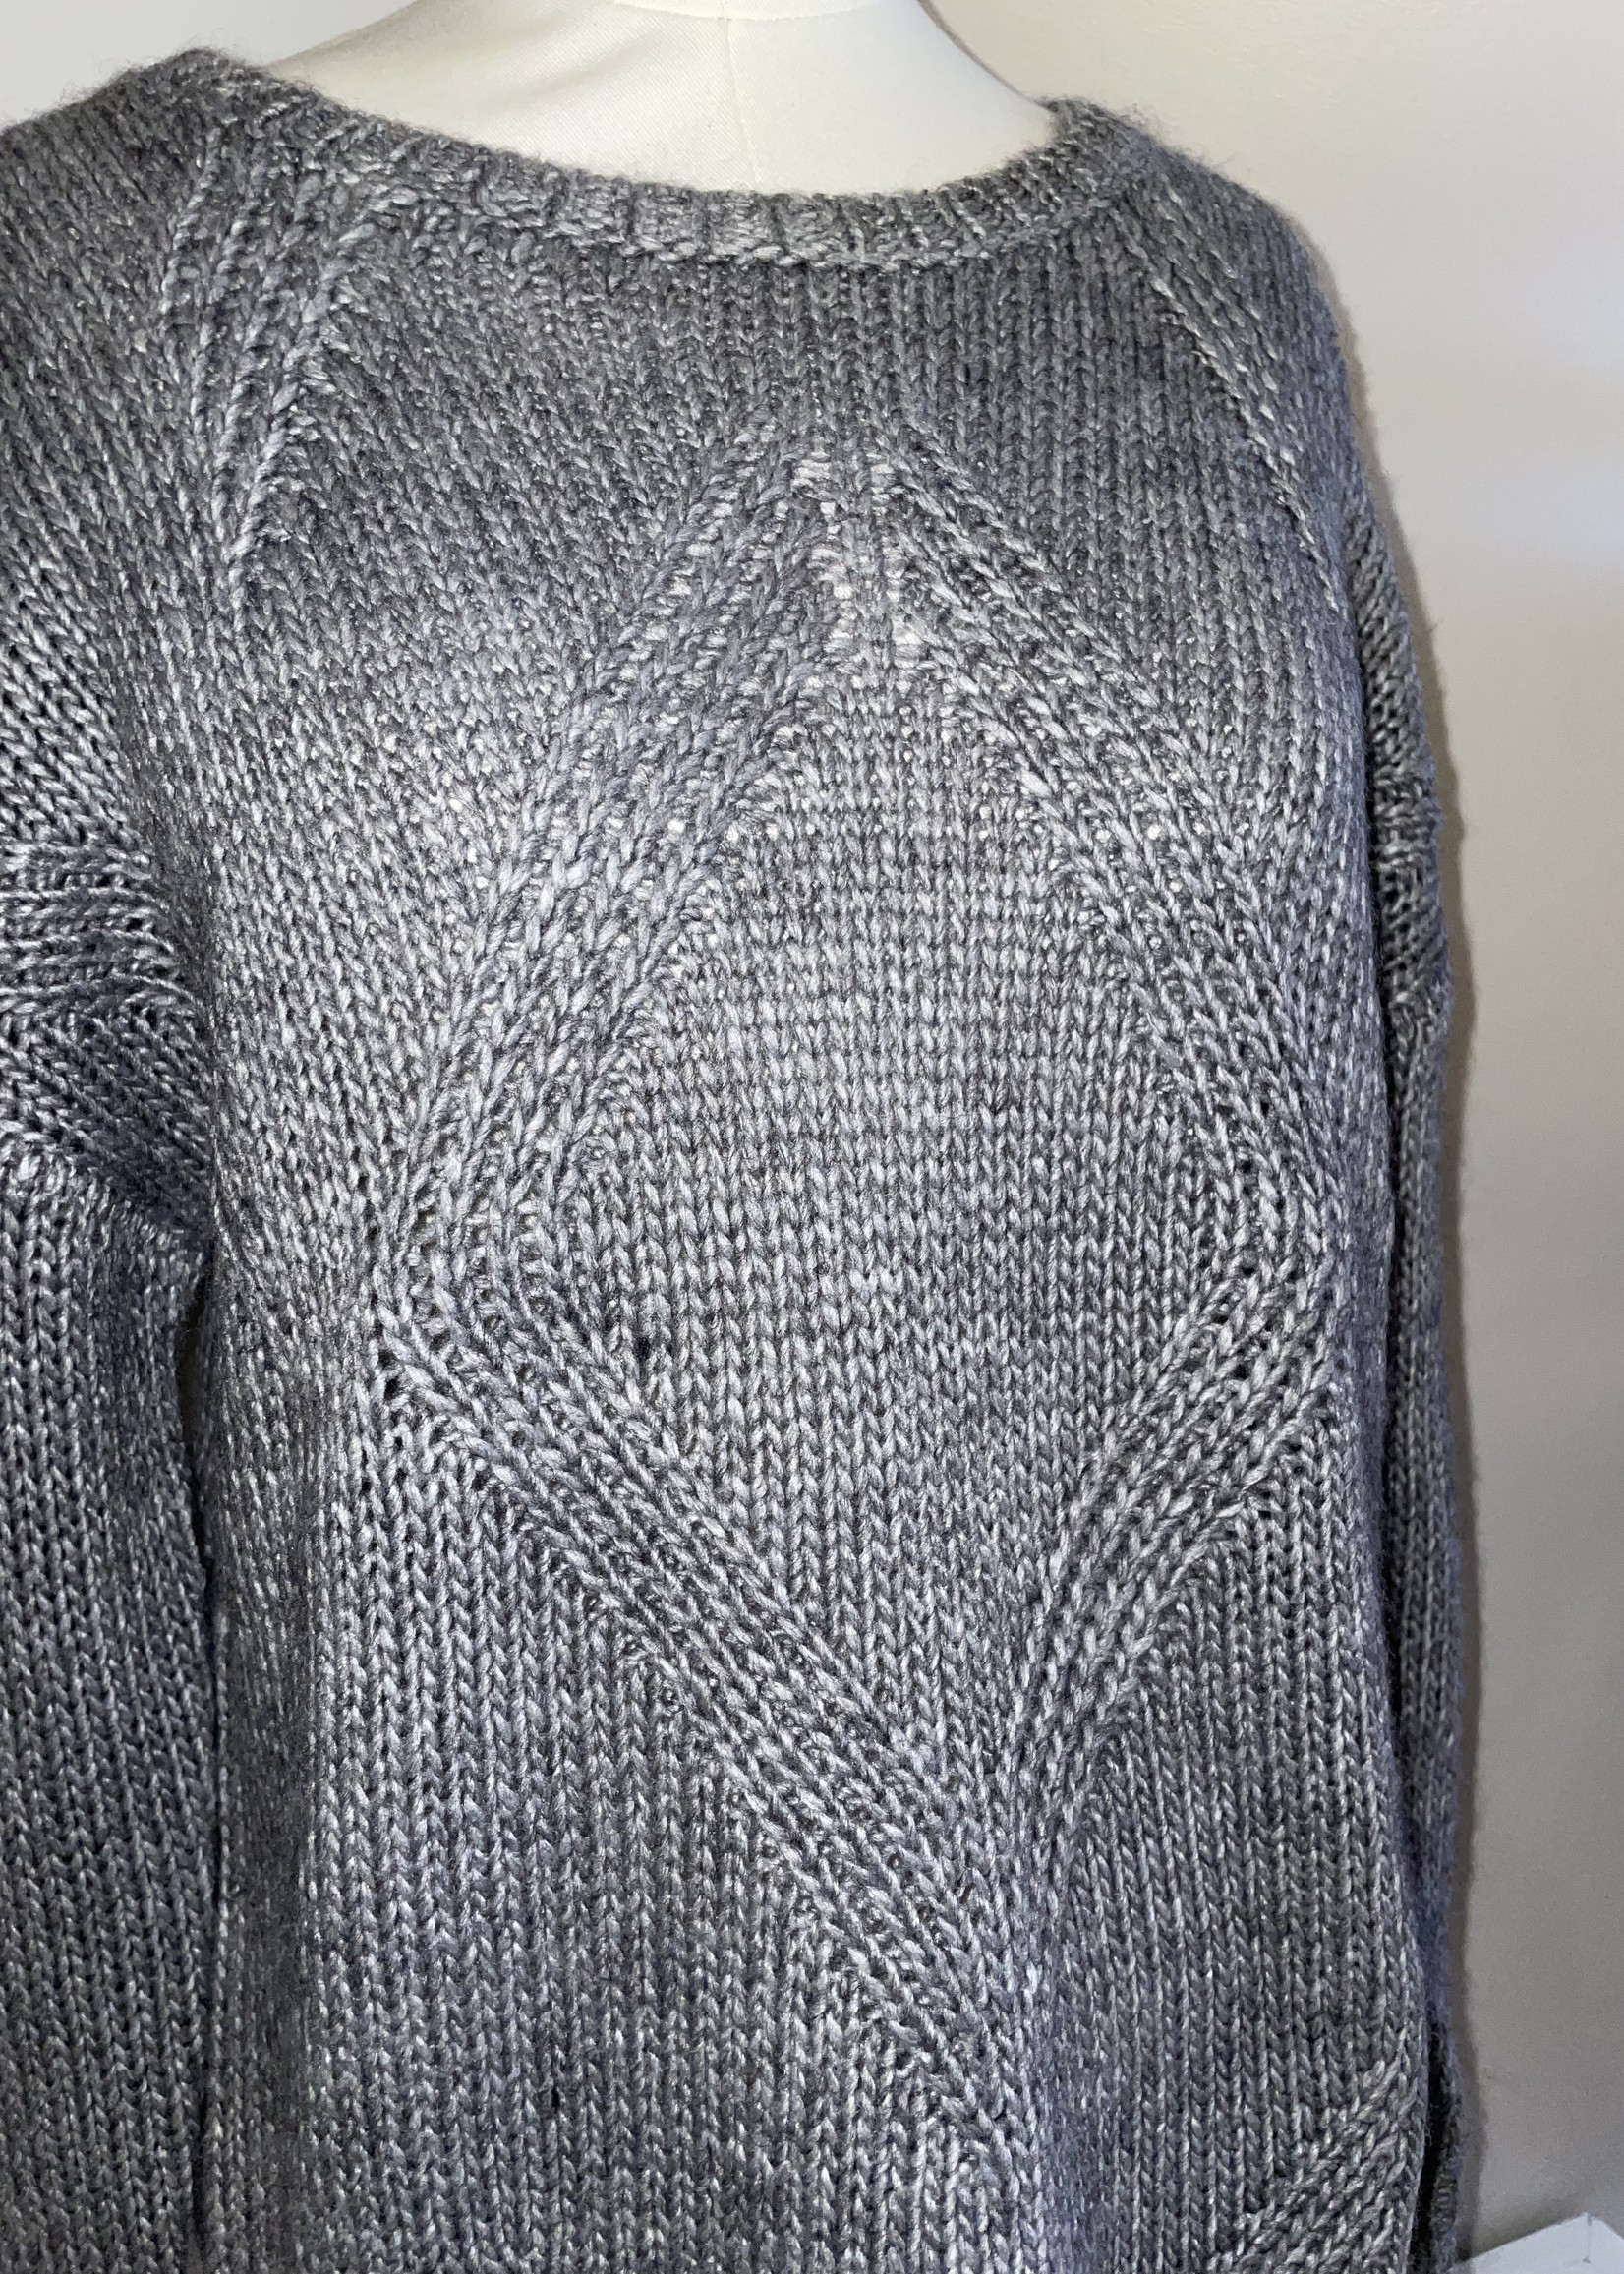 Sunday Gray Cable-Knit Sweater